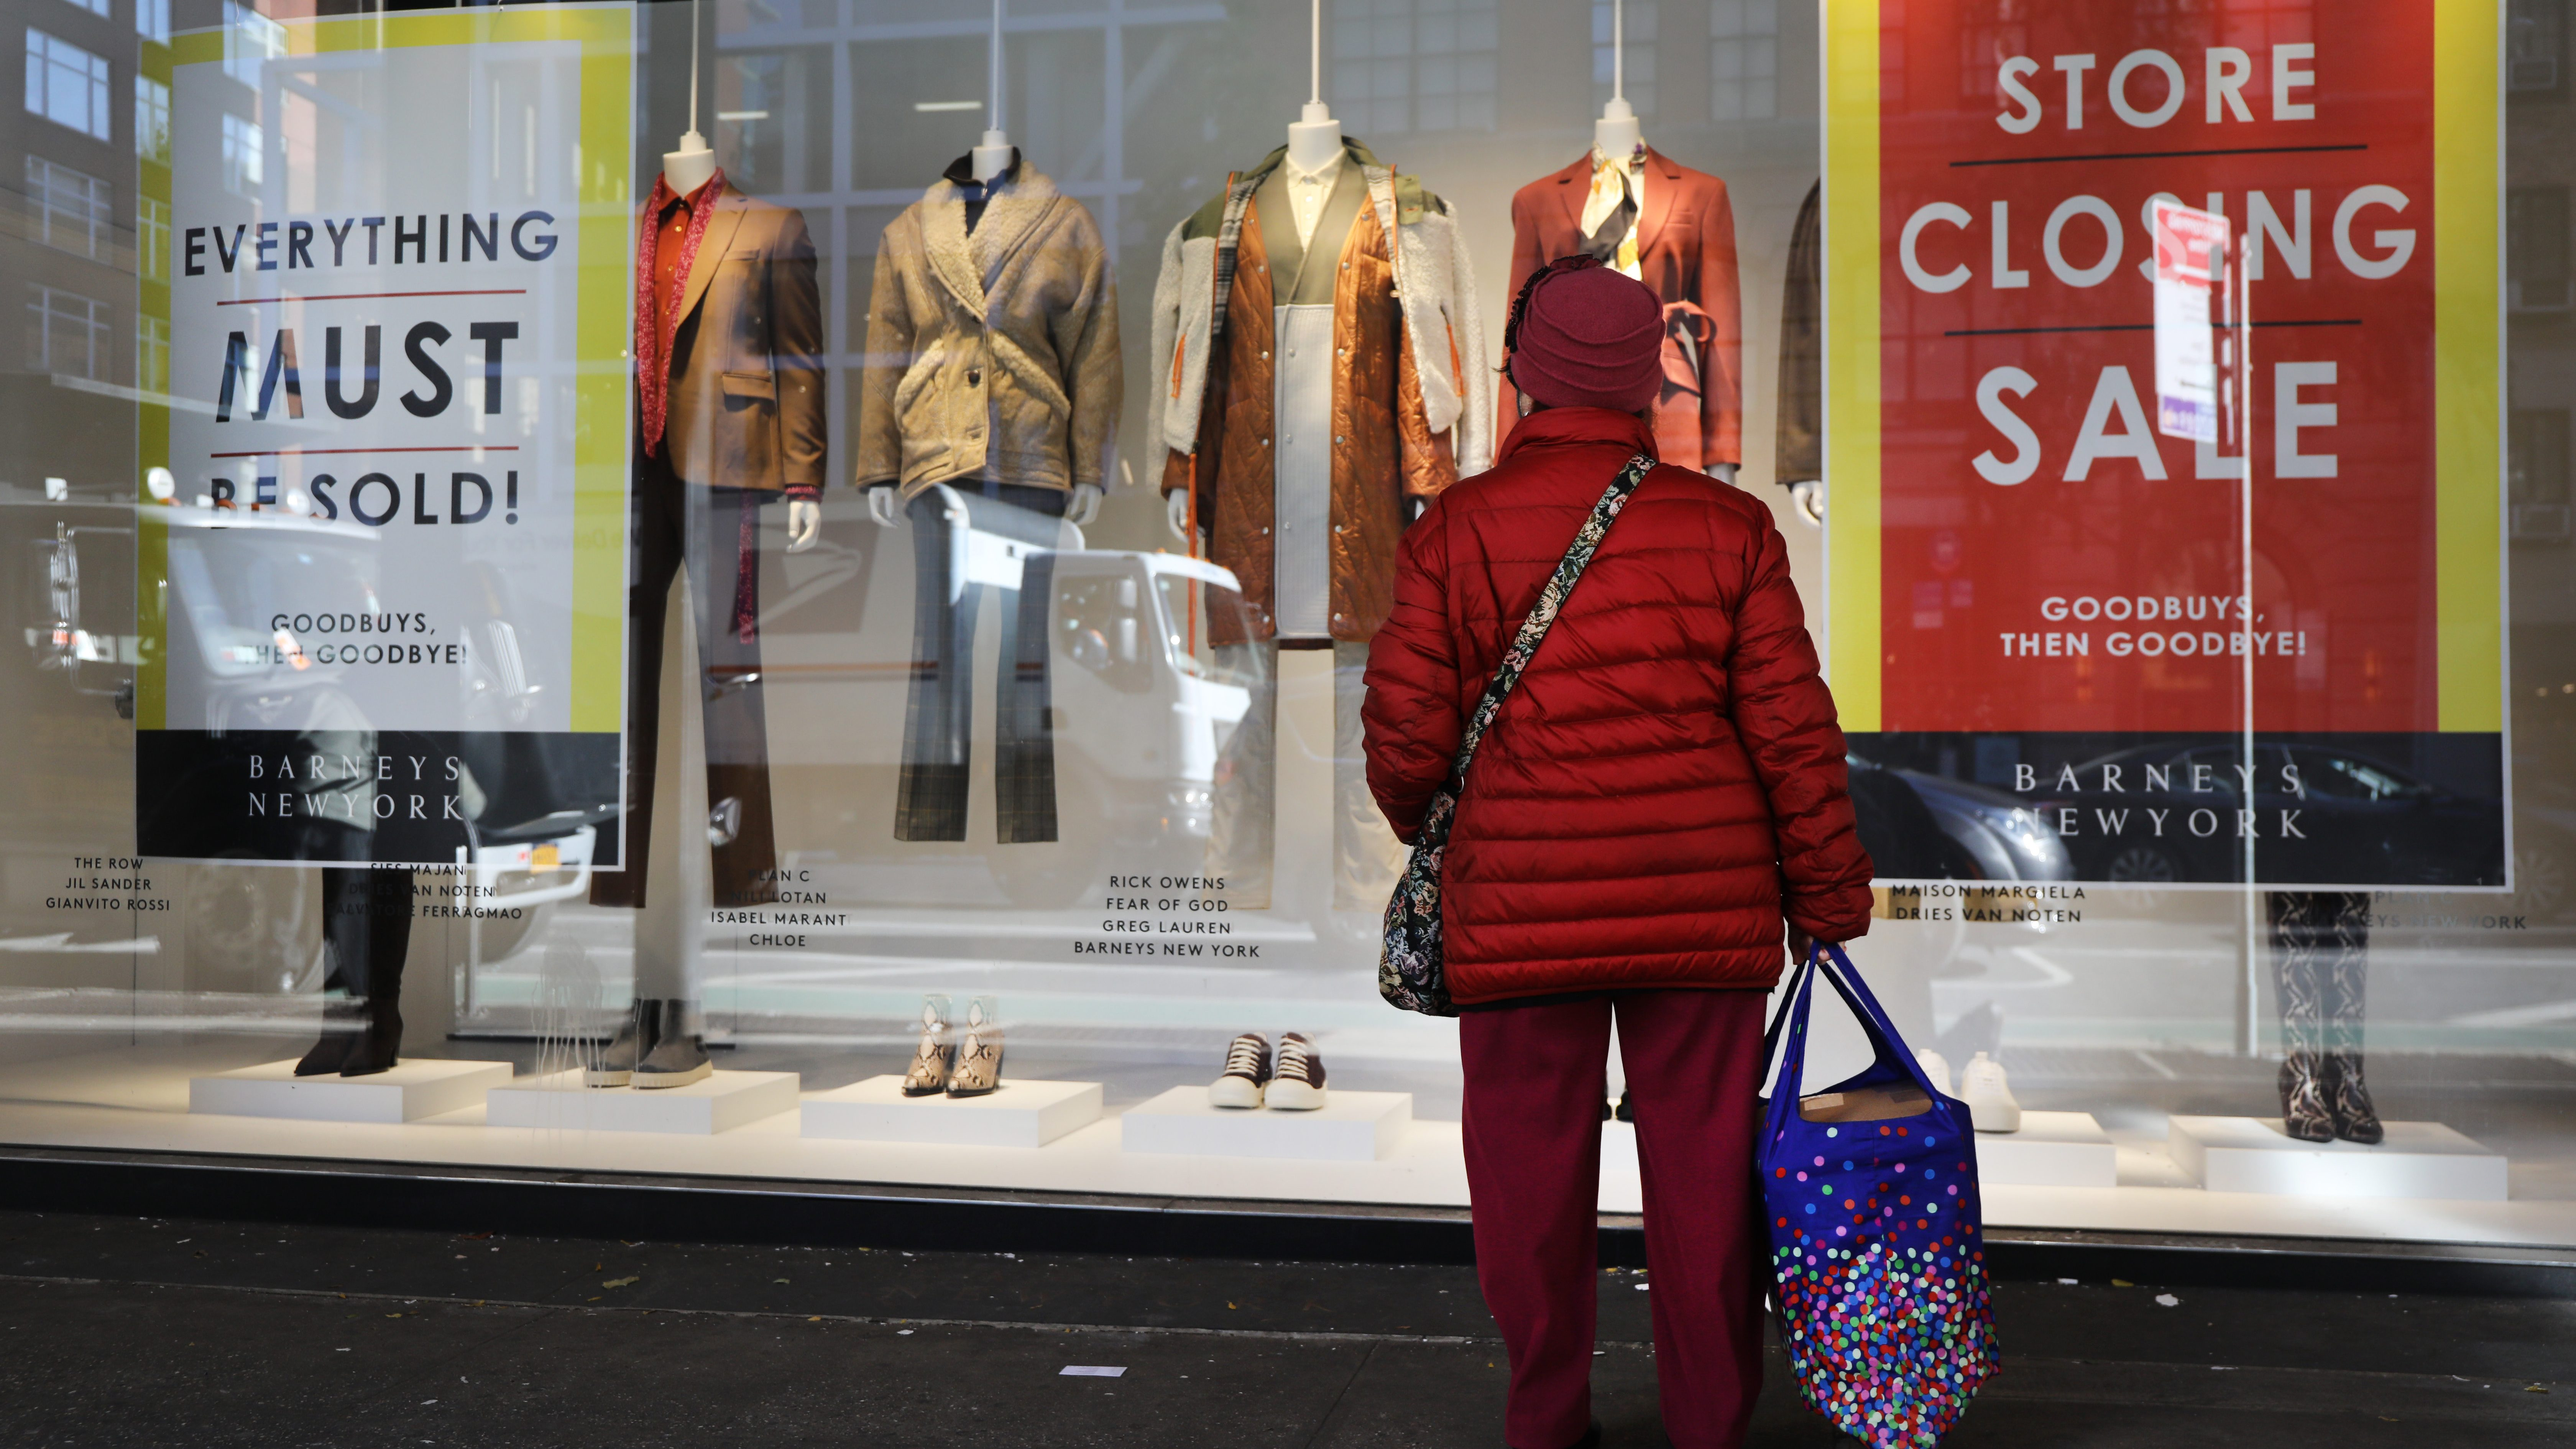 2019 saw a dramatic spike in US retailers closing stores